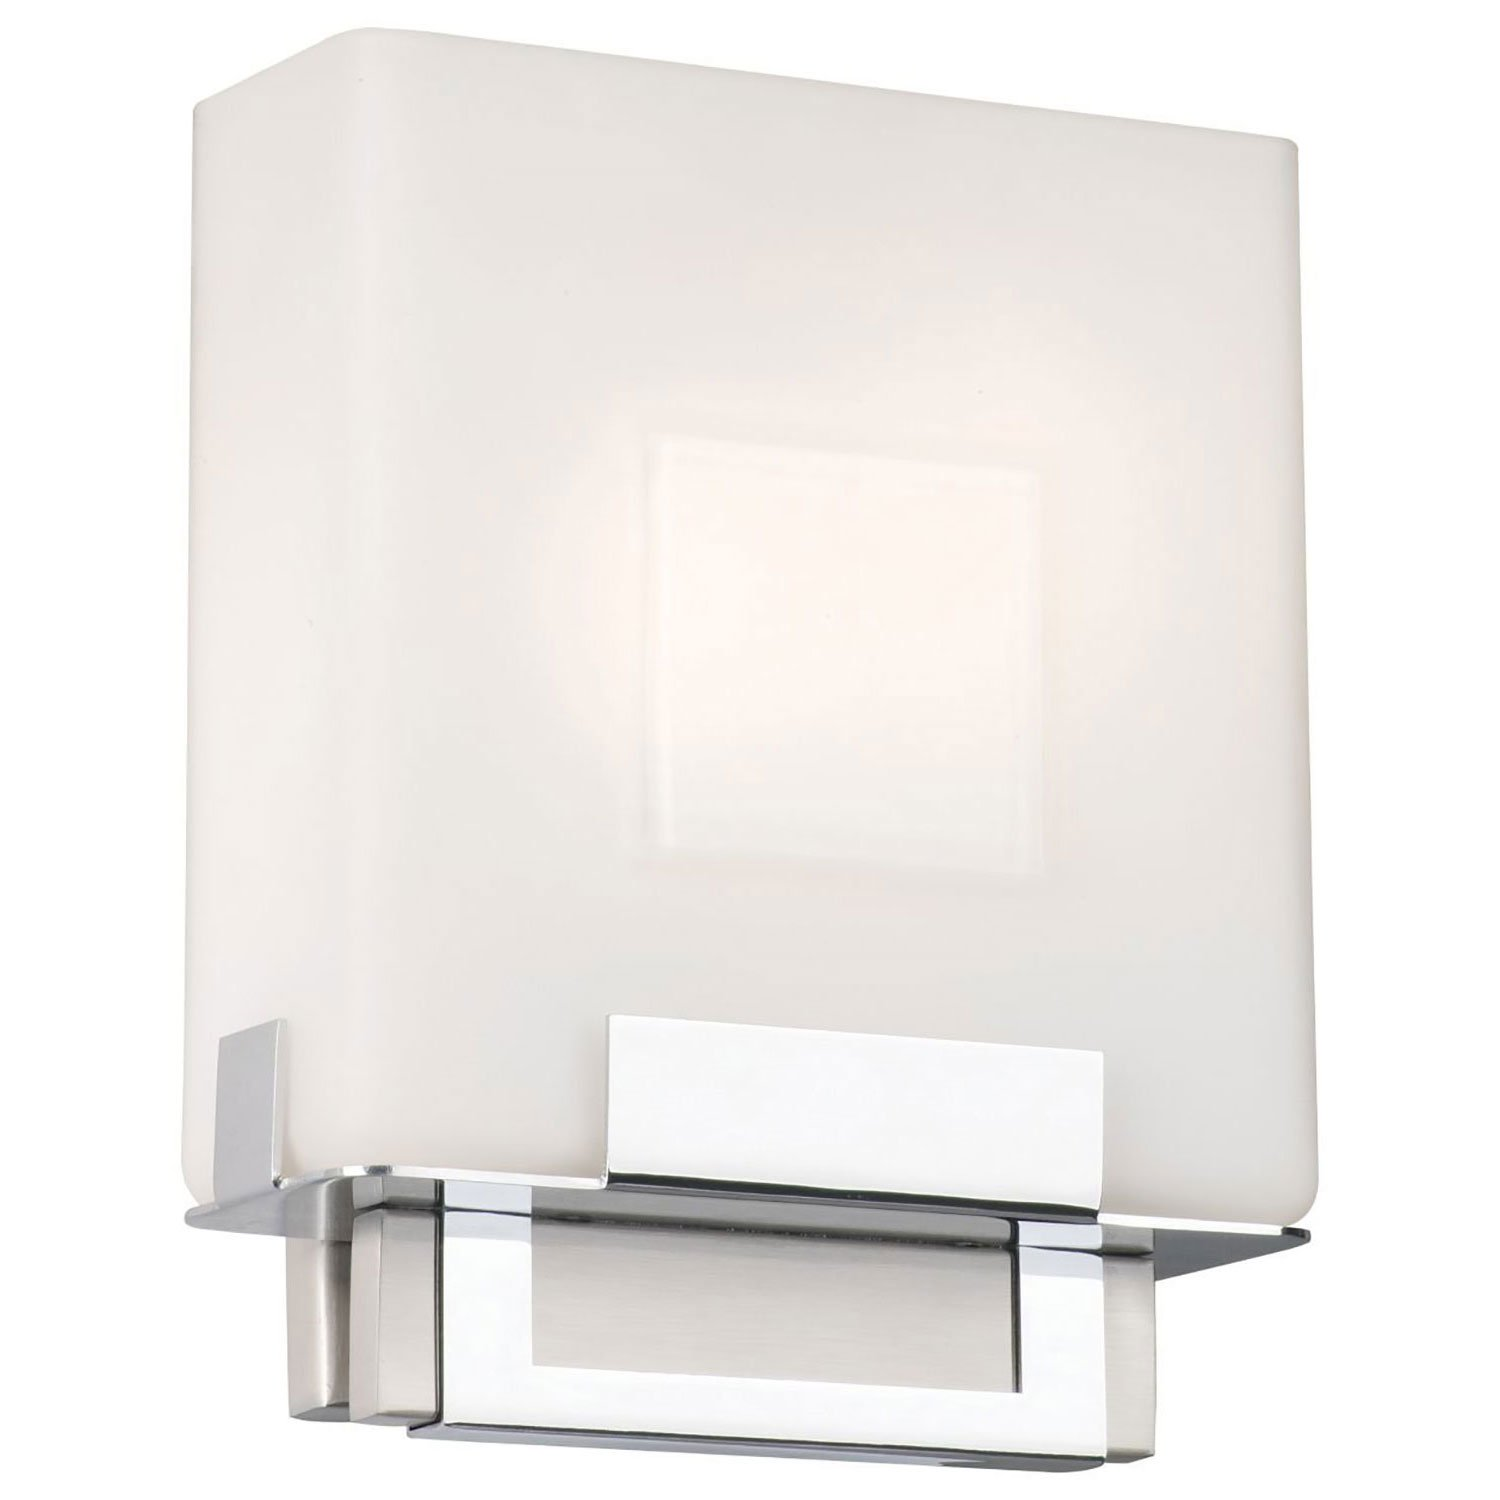 Phillips Forecast Lighting F544336E1 Square Bathroom Sconce Light Satin Nickel  sc 1 st  Walmart & Phillips Forecast Lighting F544336E1 Square Bathroom Sconce Light ...